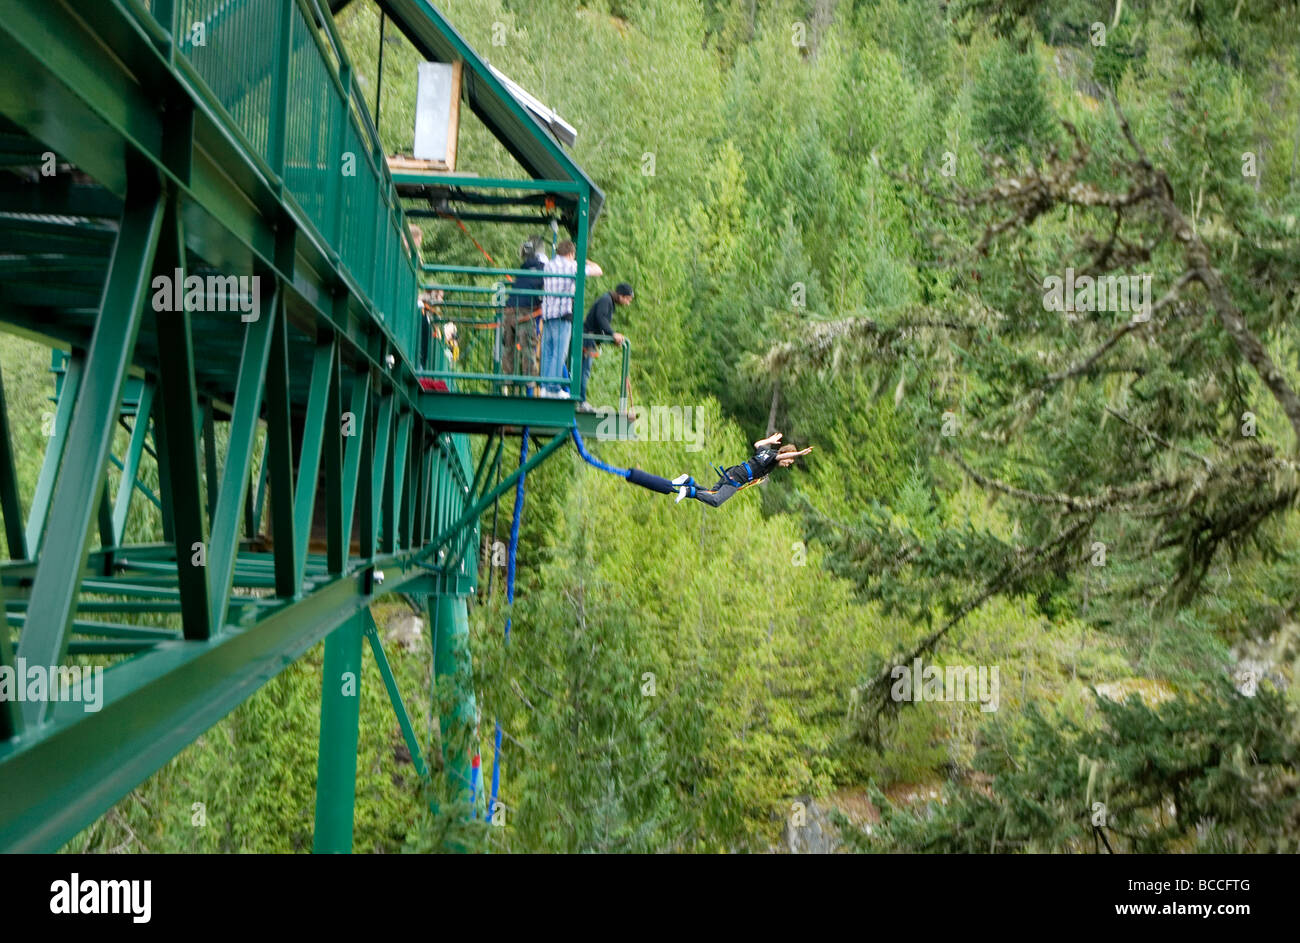 Person in mid-air bungee jumping from bridge at Whistler, British Columbia, Canada - Stock Image